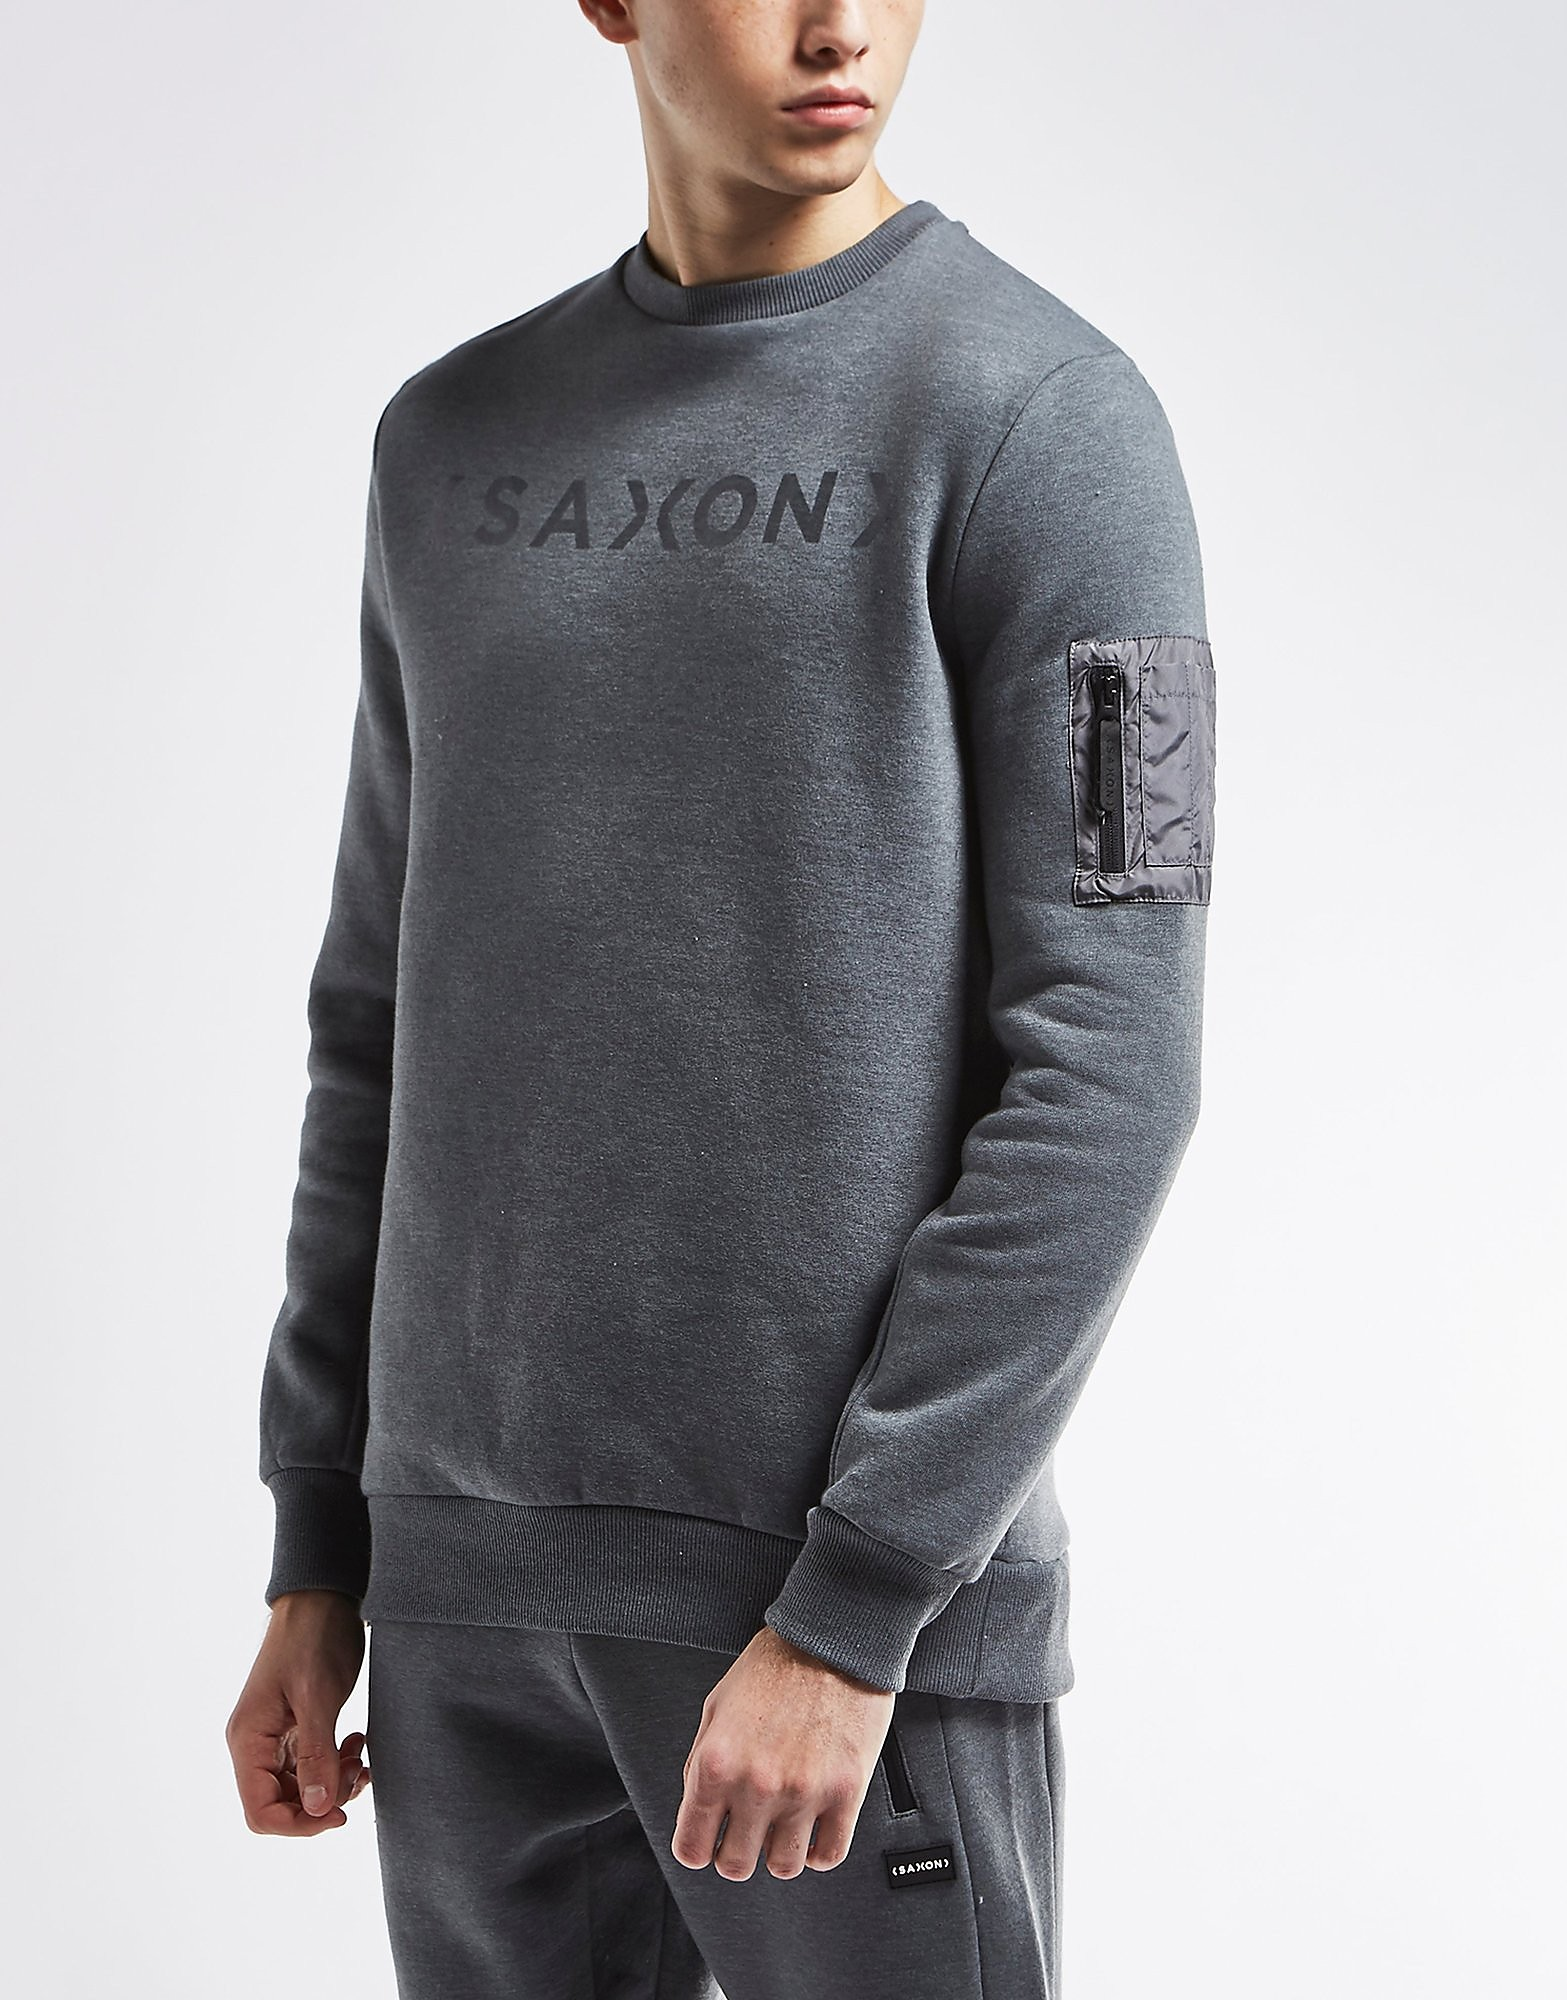 One True Saxon Renda Crew Neck Sweatshirt